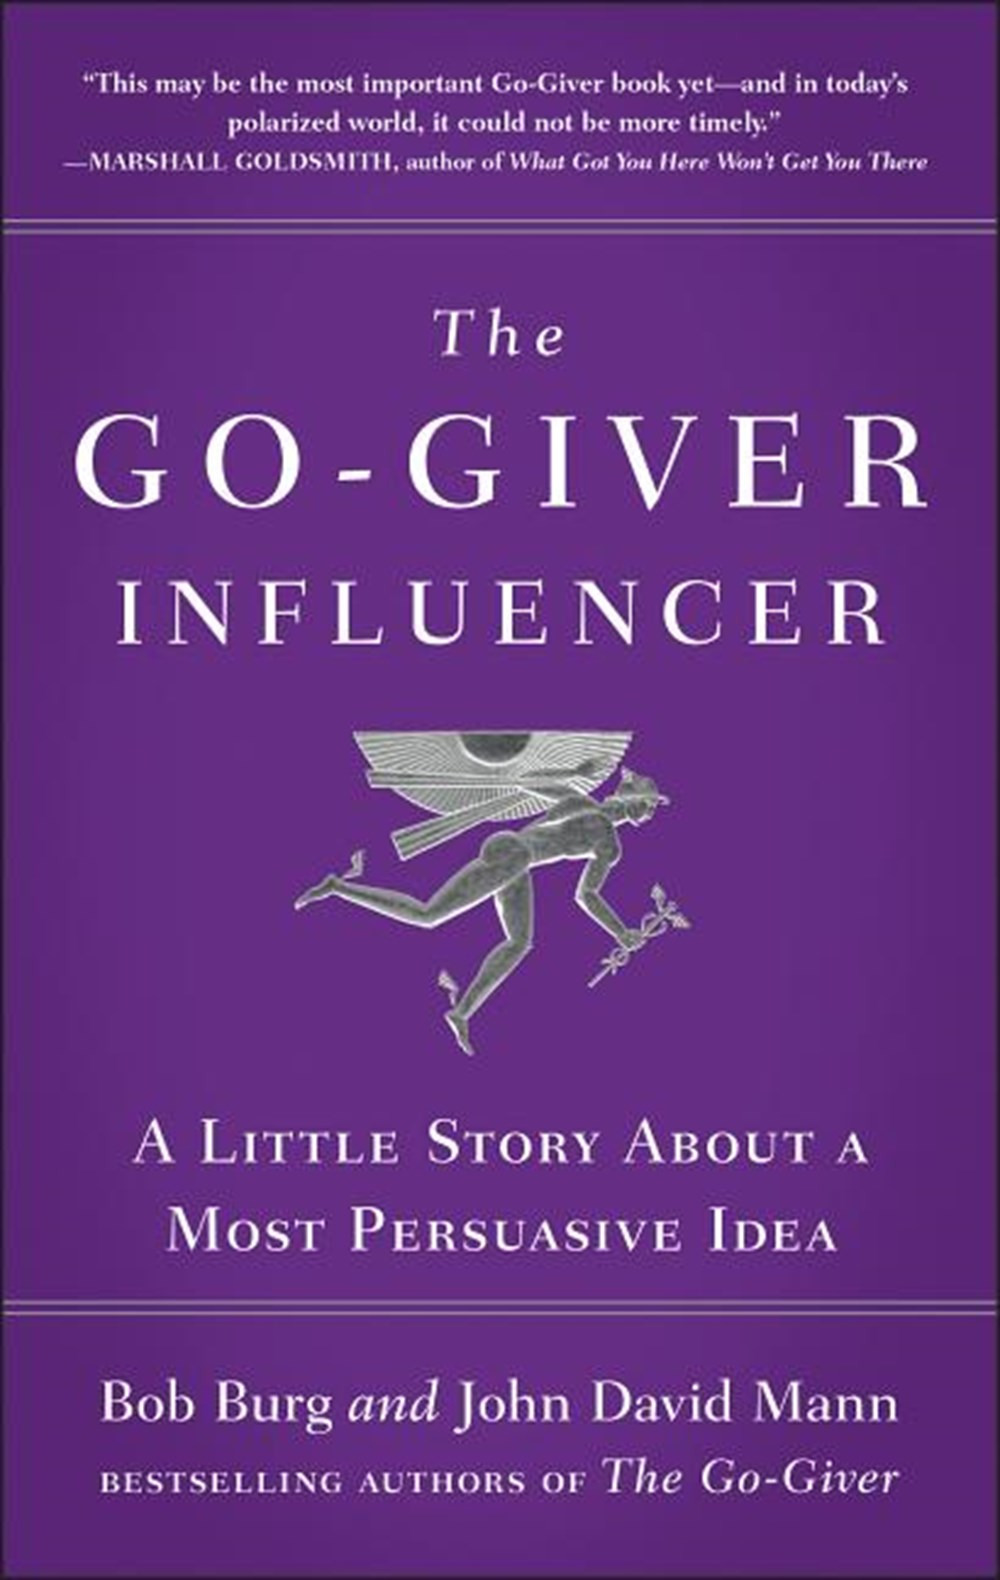 Go-Giver Influencer A Little Story about a Most Persuasive Idea